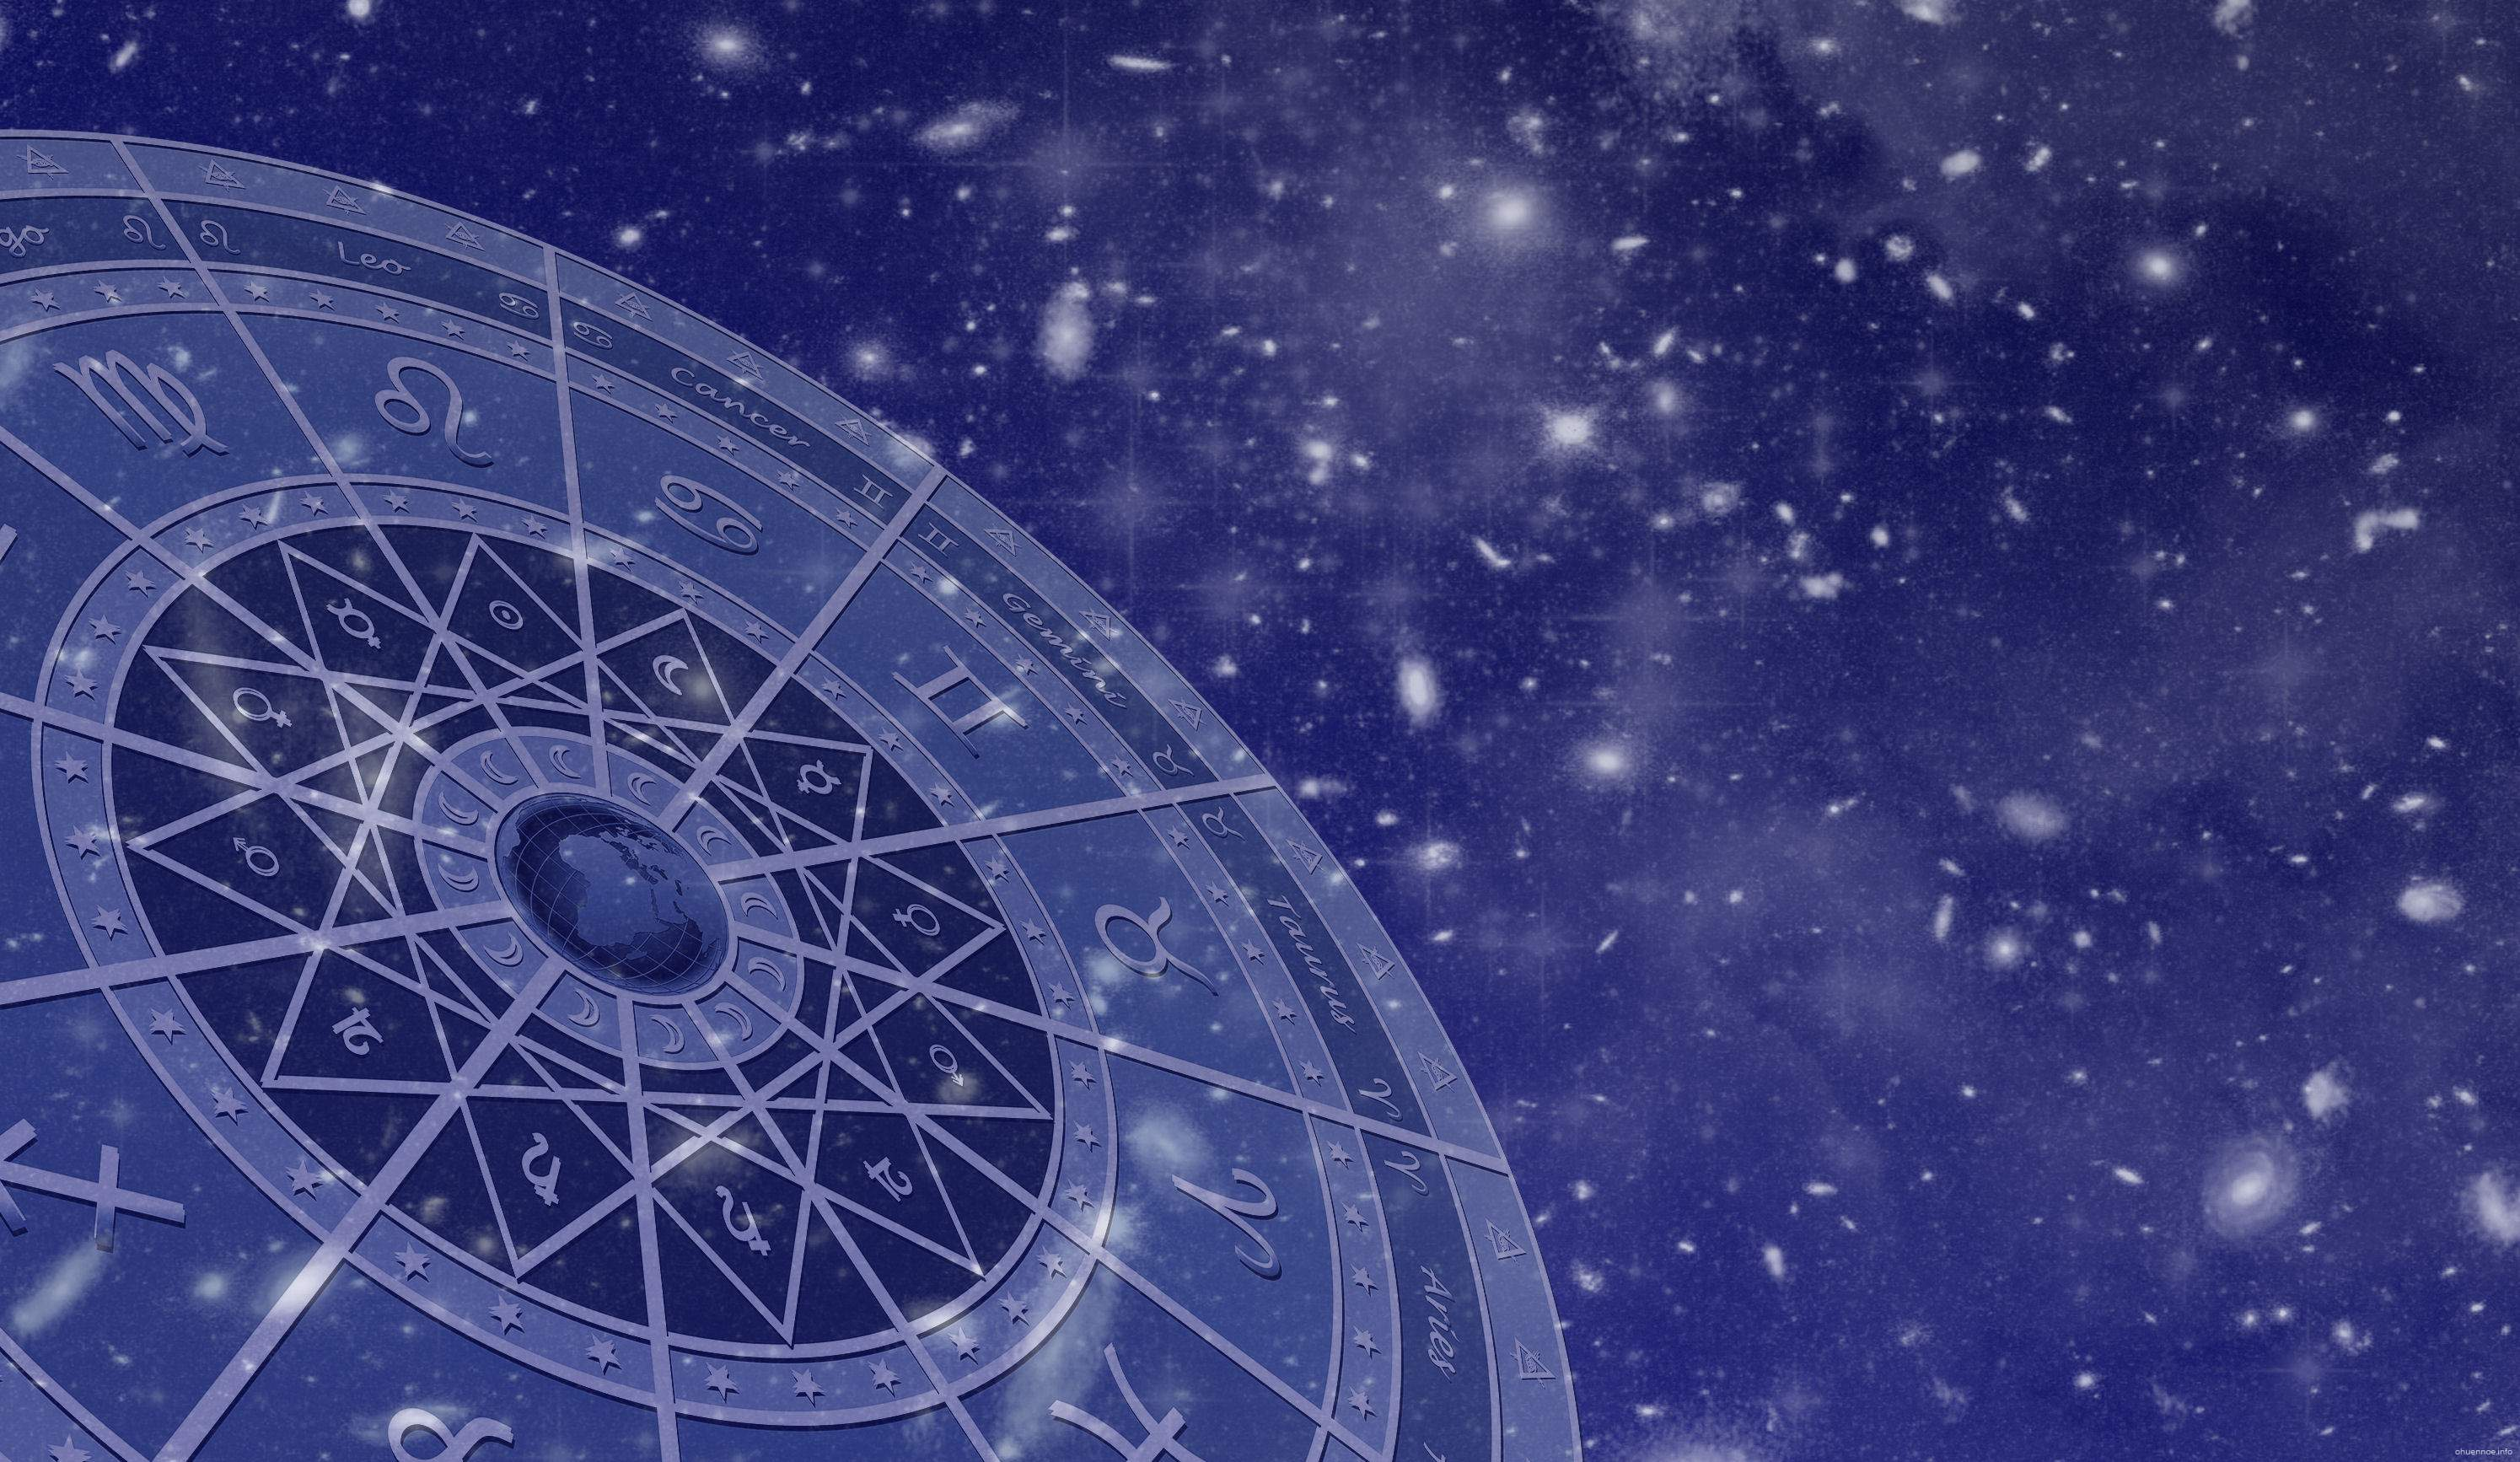 1398878178_zodiac_signs__signs_of_the_zodiac_on_a_blue_background_047591__30967500-2